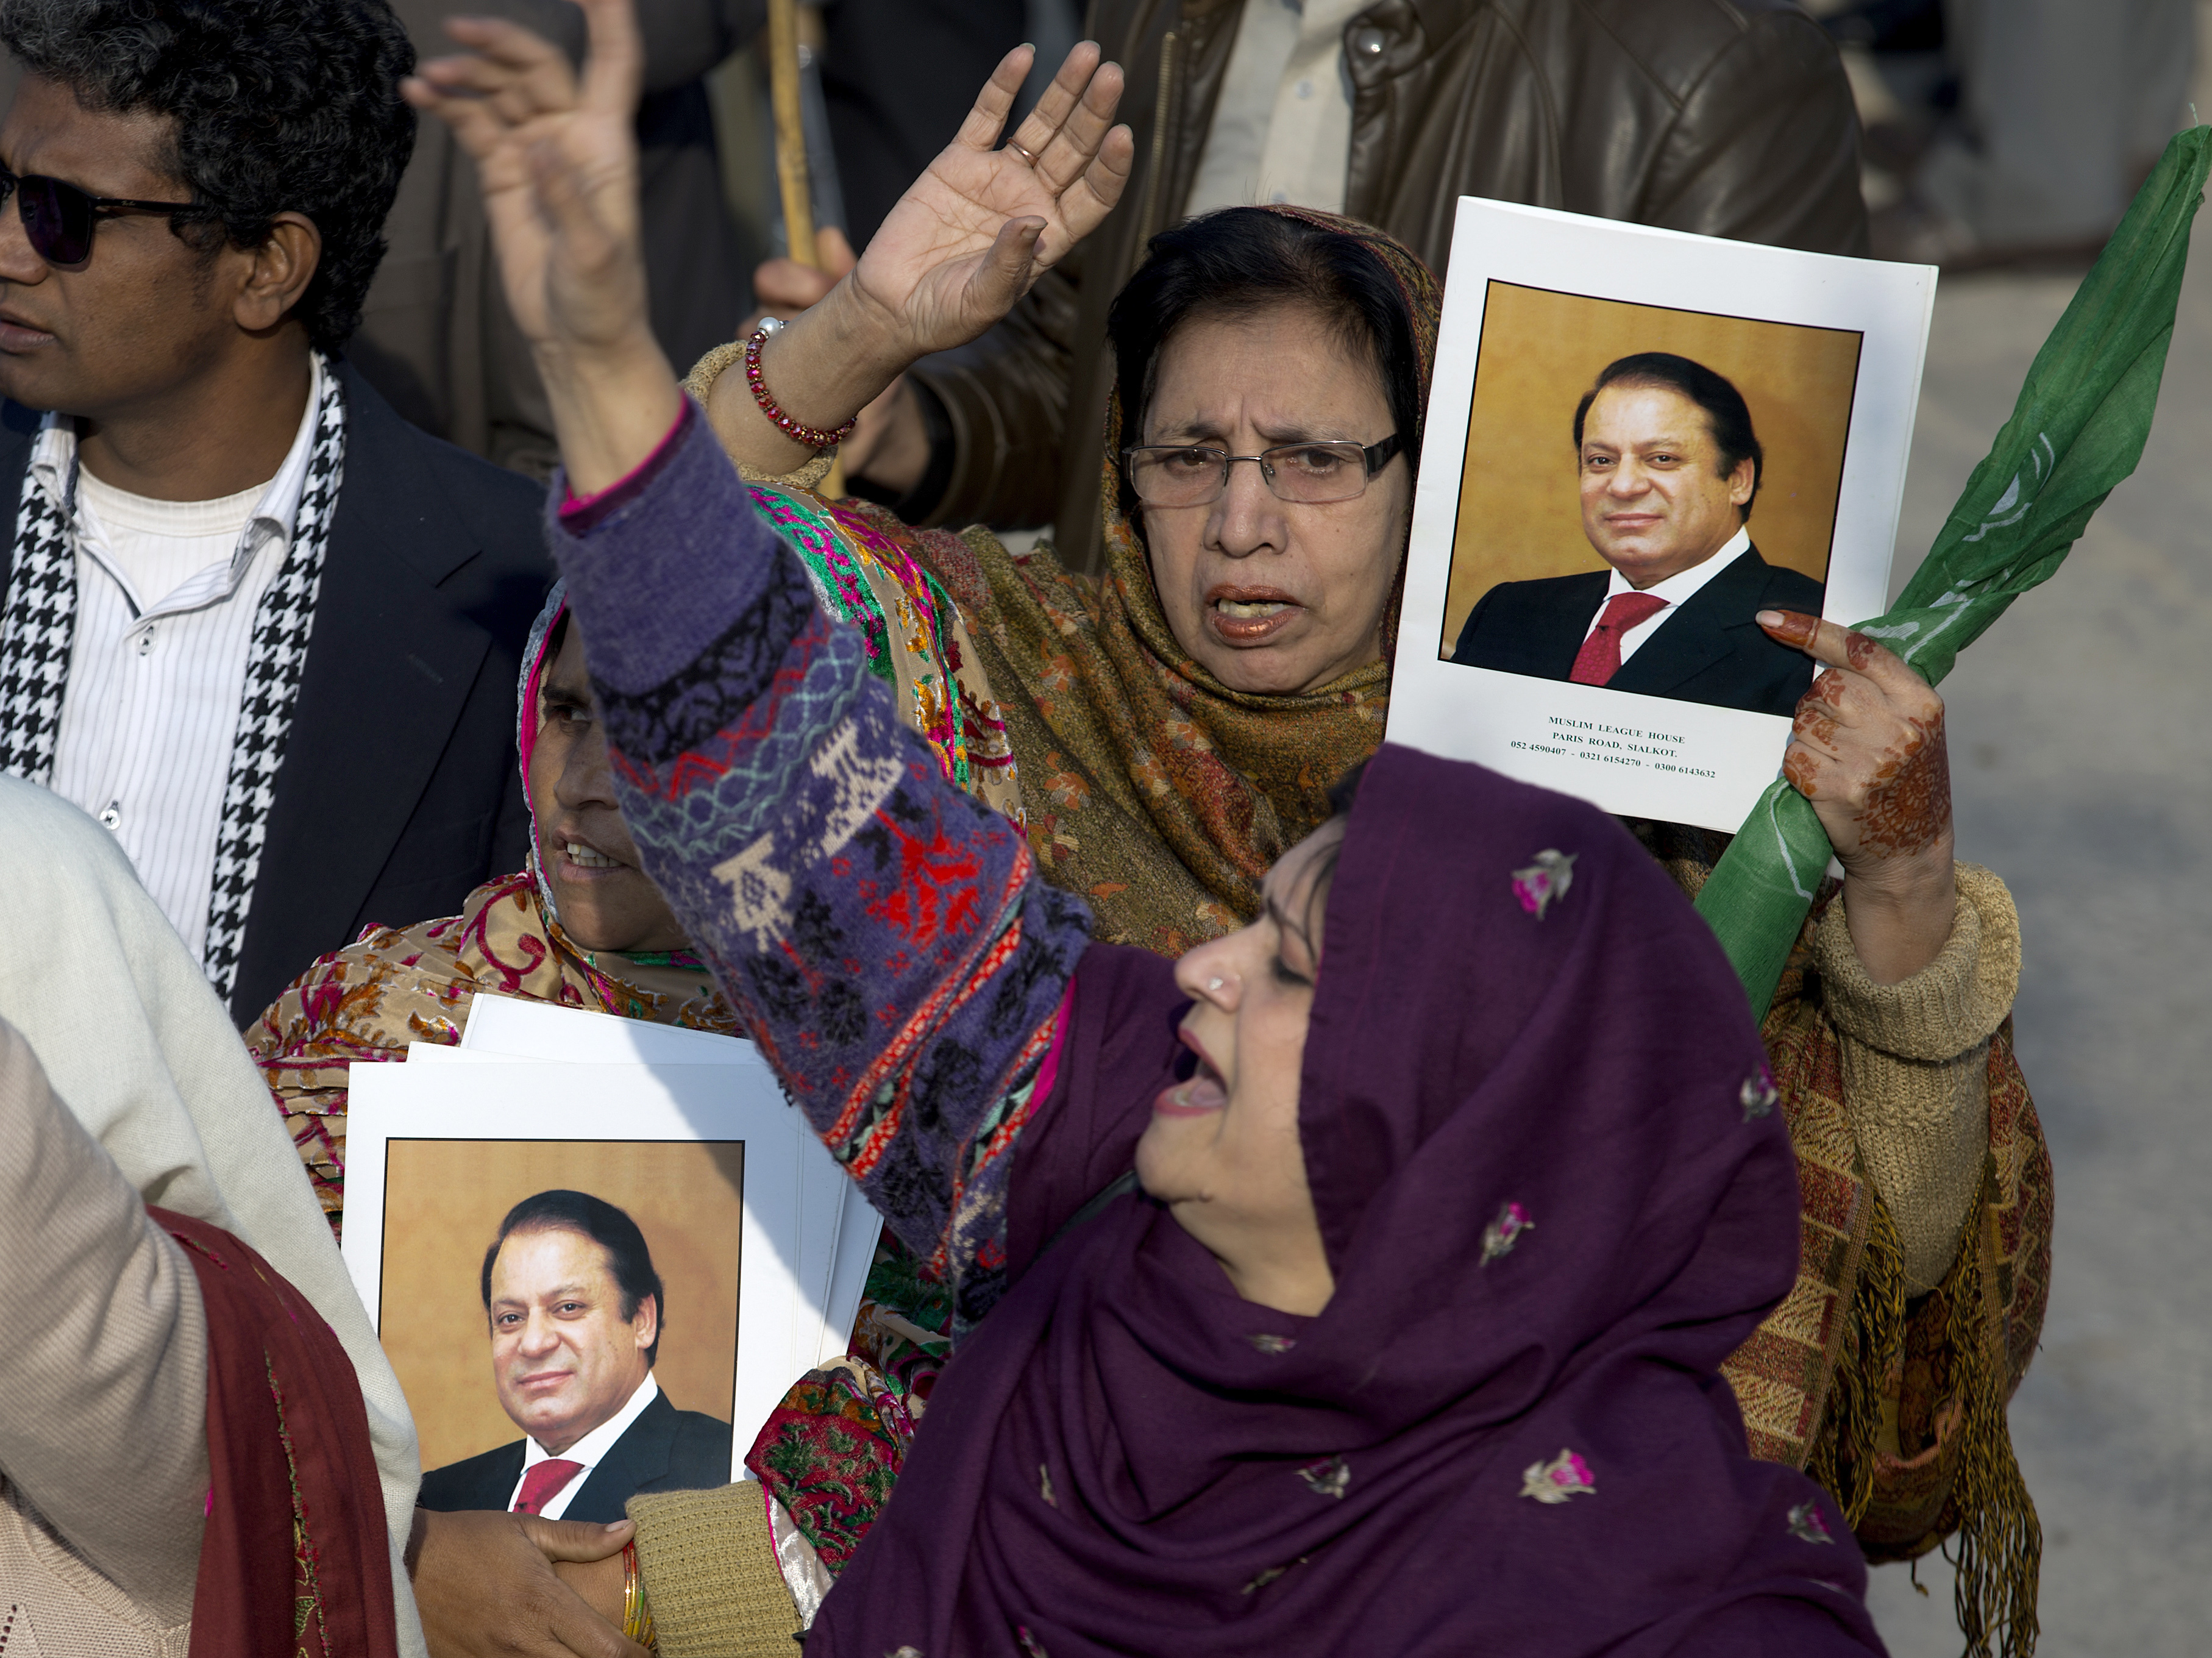 Pakistan's Ex-Prime Minister Sharif Sentenced To 7 Years In Latest Corruption Case